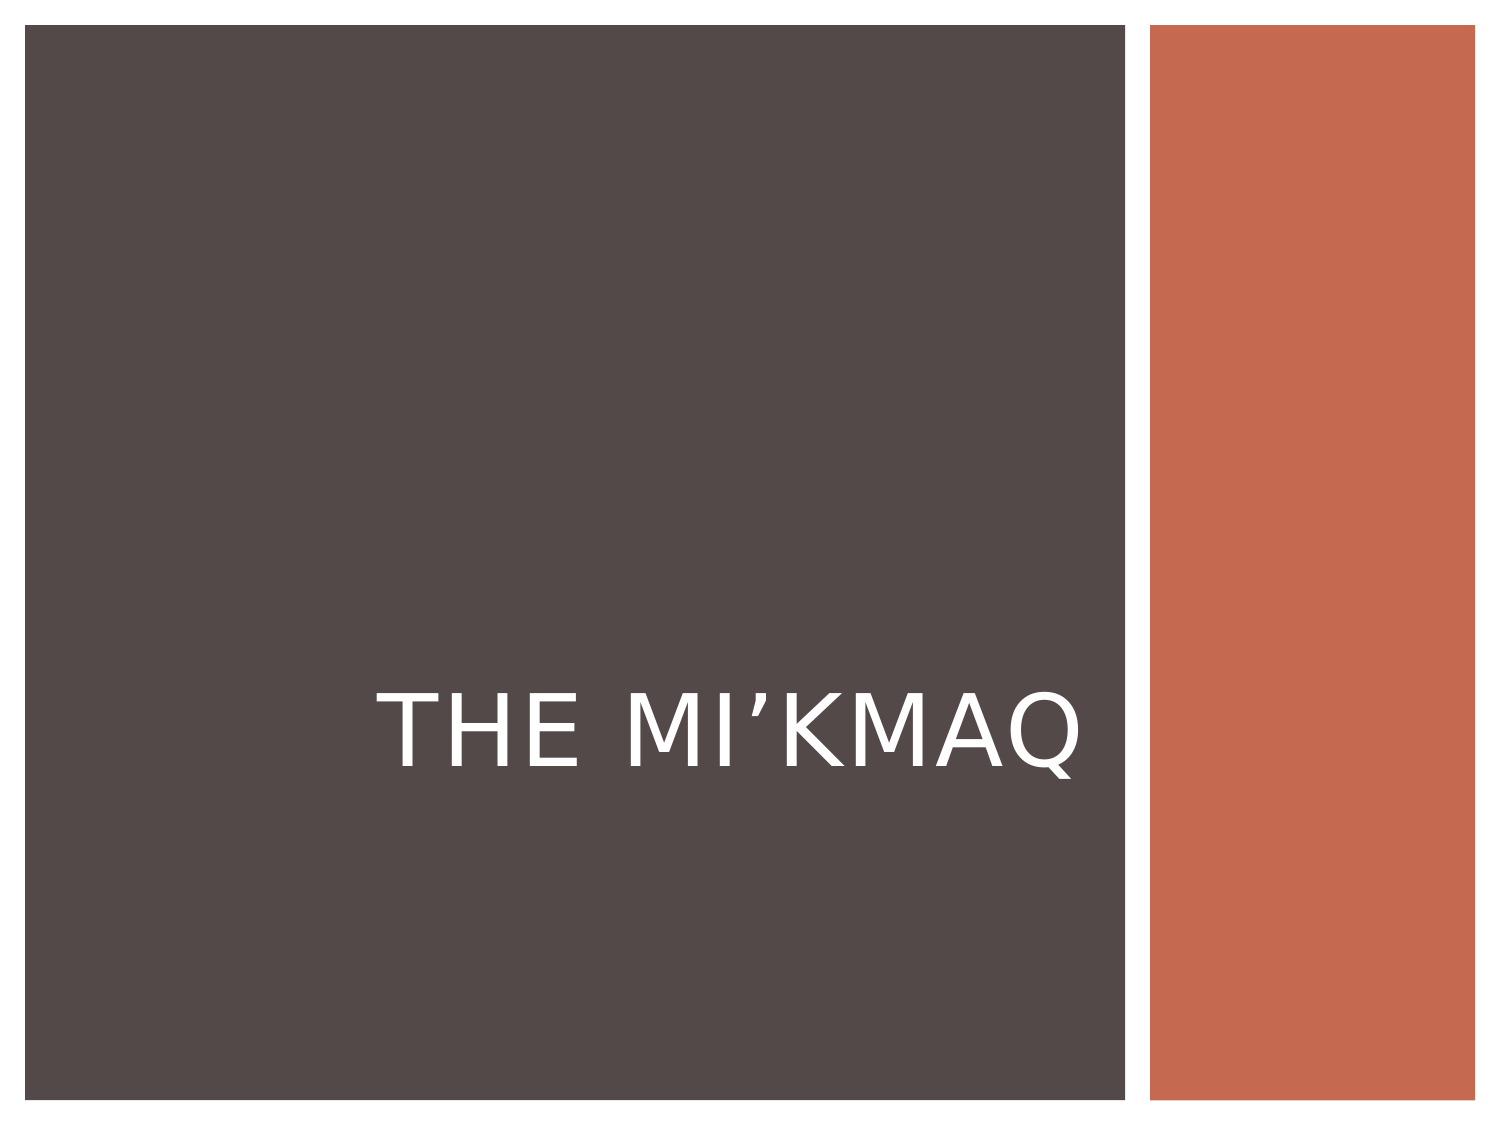 The MiKmaq Resource Preview